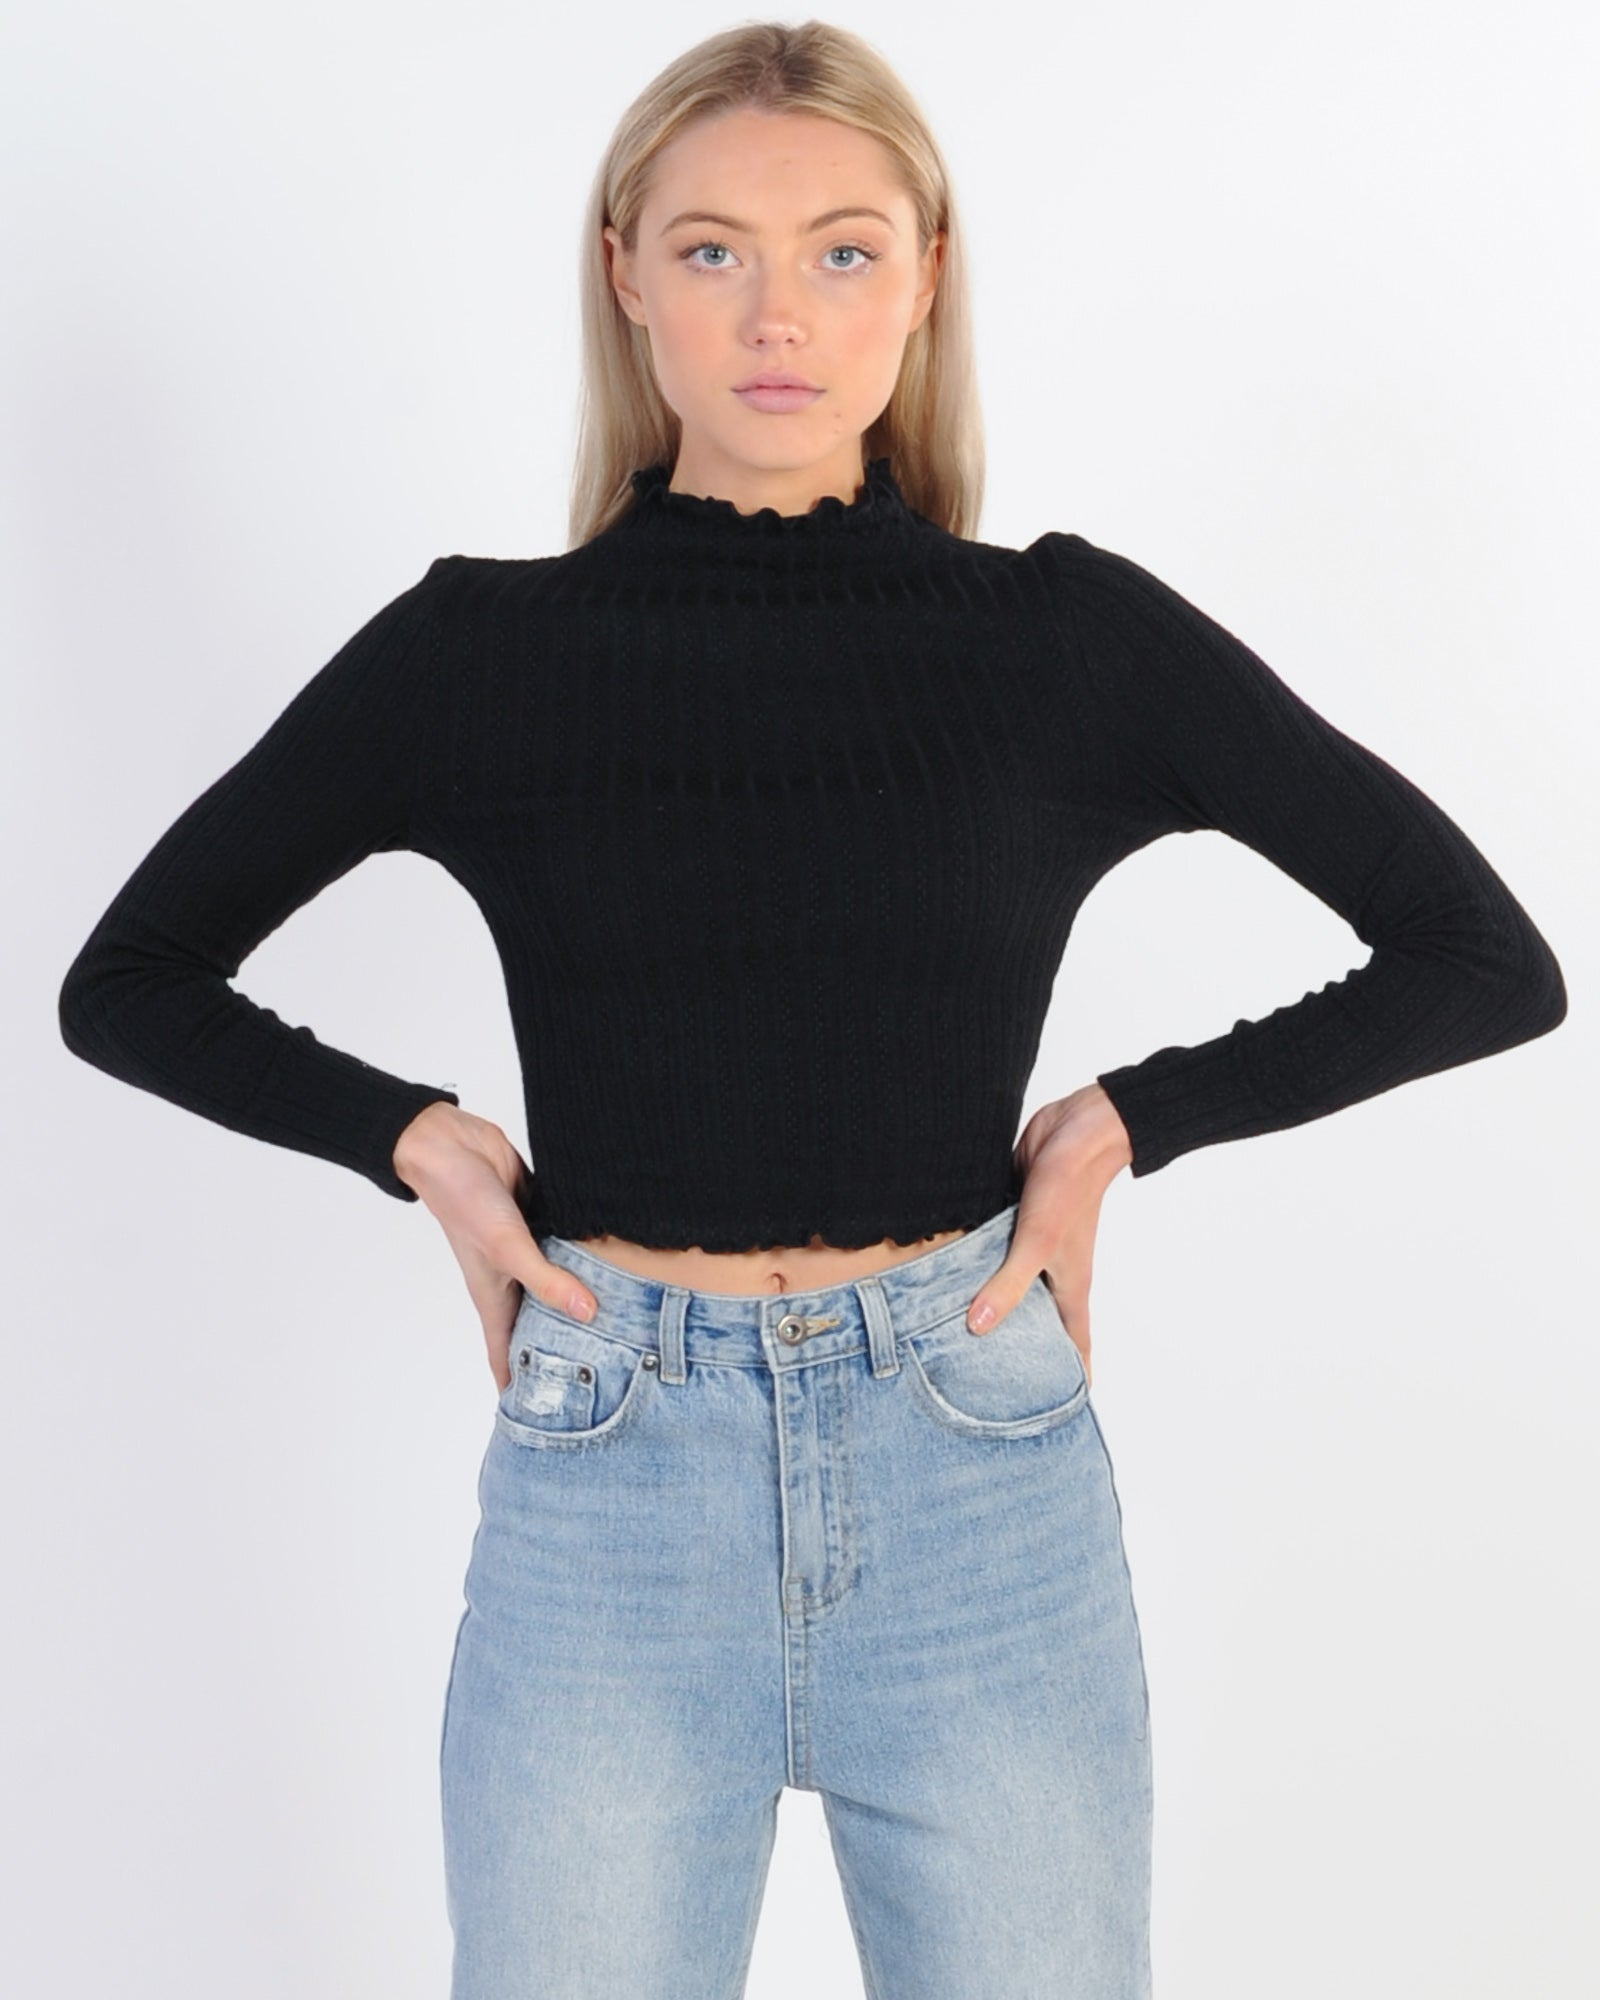 Private Party Top - Black